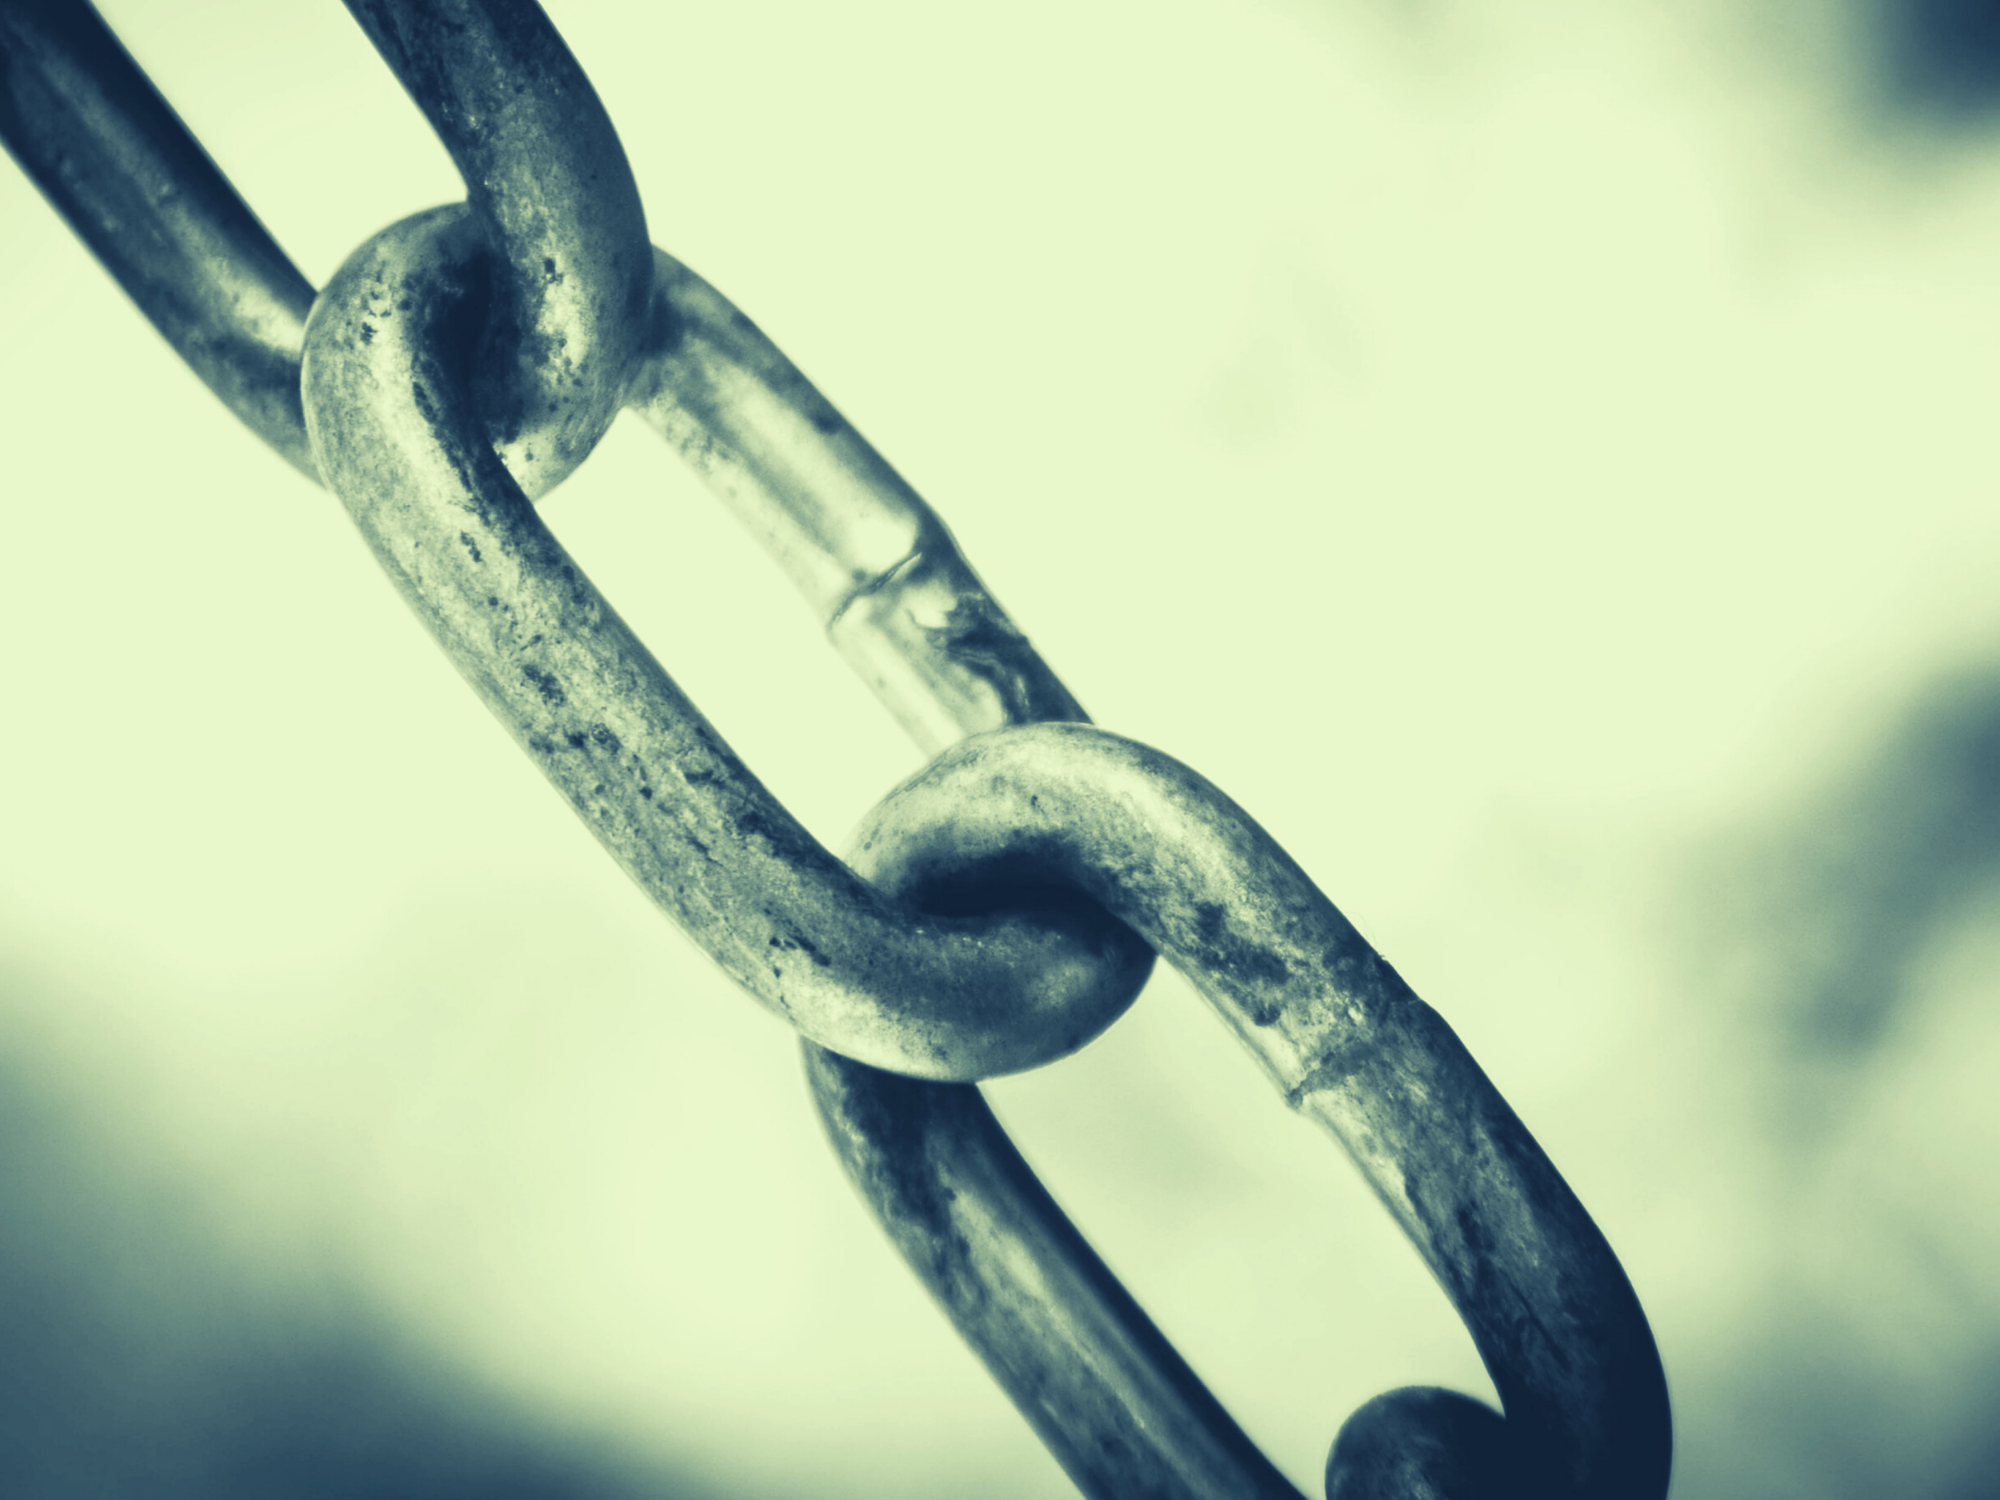 Supply Chain Cyber Security – defeating the weakest link (Part 2)